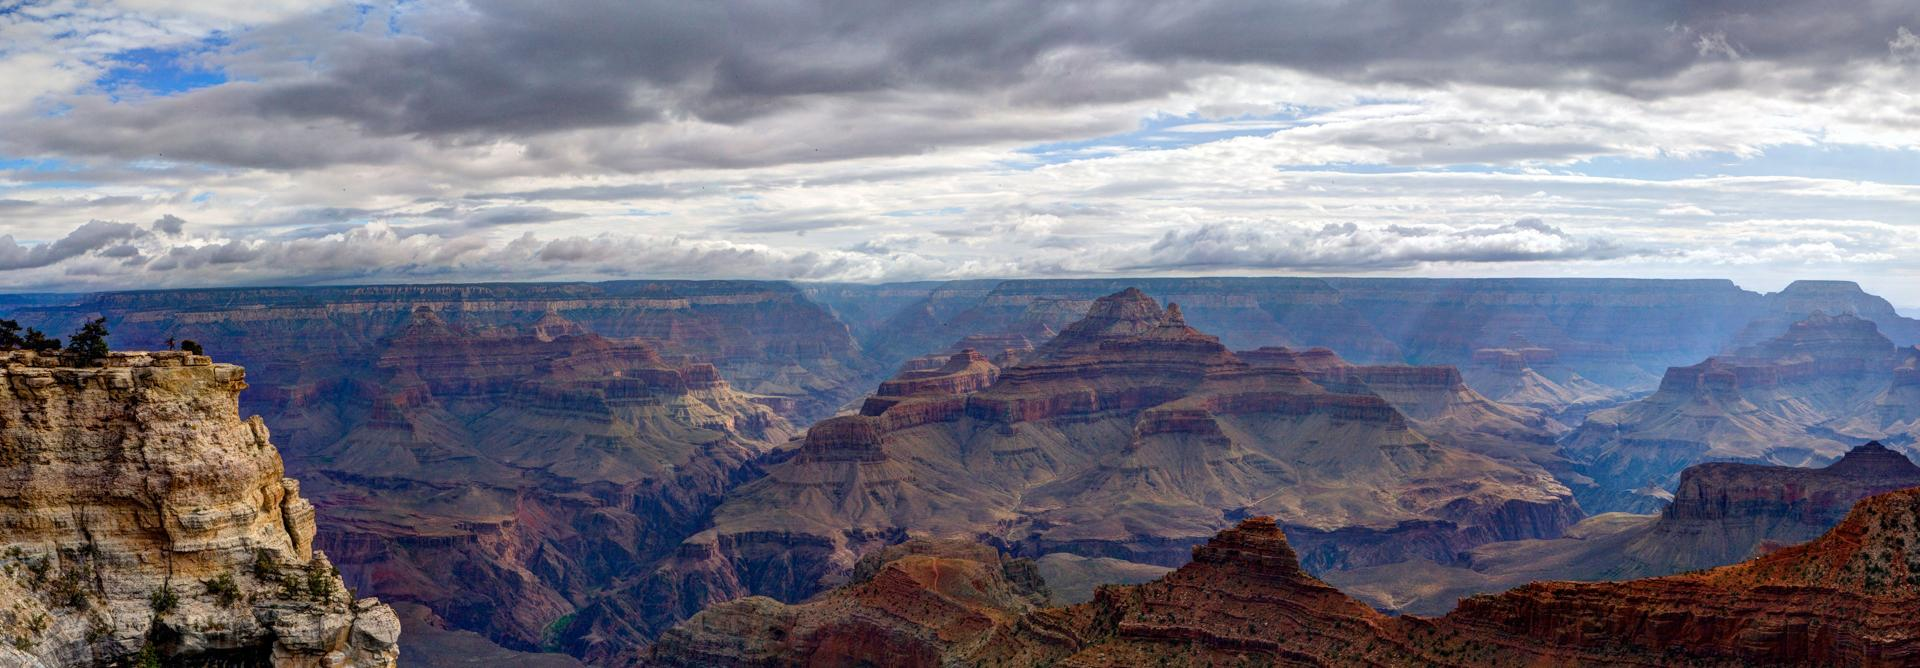 Beyond the Grand Canyon